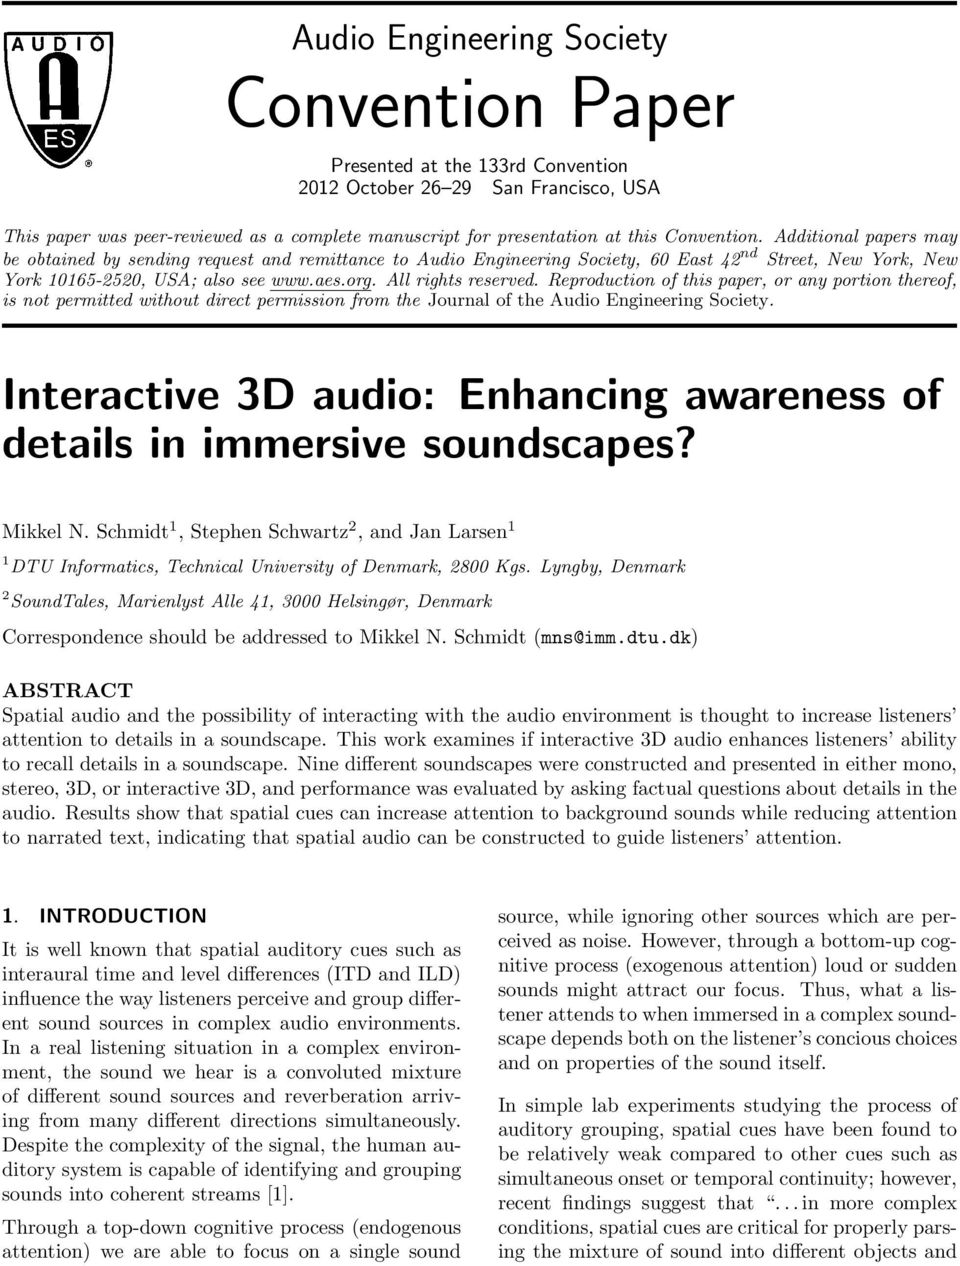 All rights reserved. Reproduction of this paper, or any portion thereof, is not permitted without direct permission from the Journal of the Audio Engineering Society.